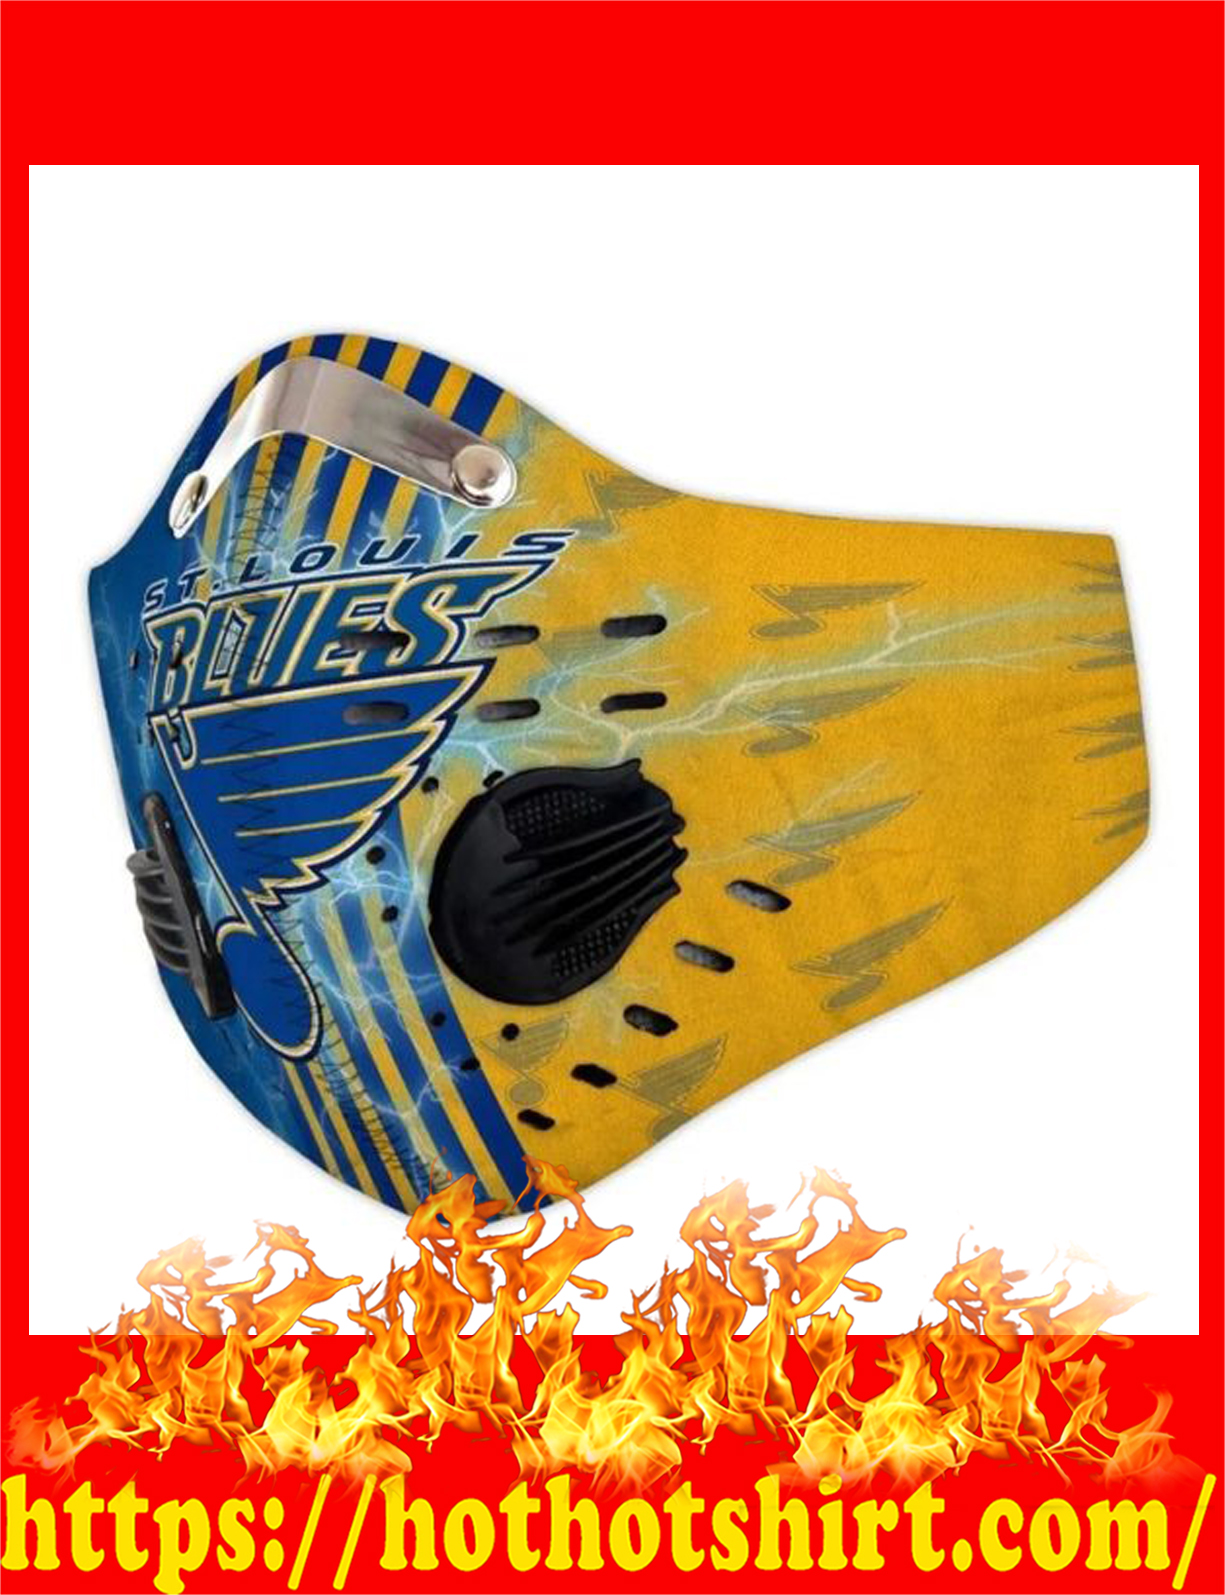 St louis blues filter face mask - detail